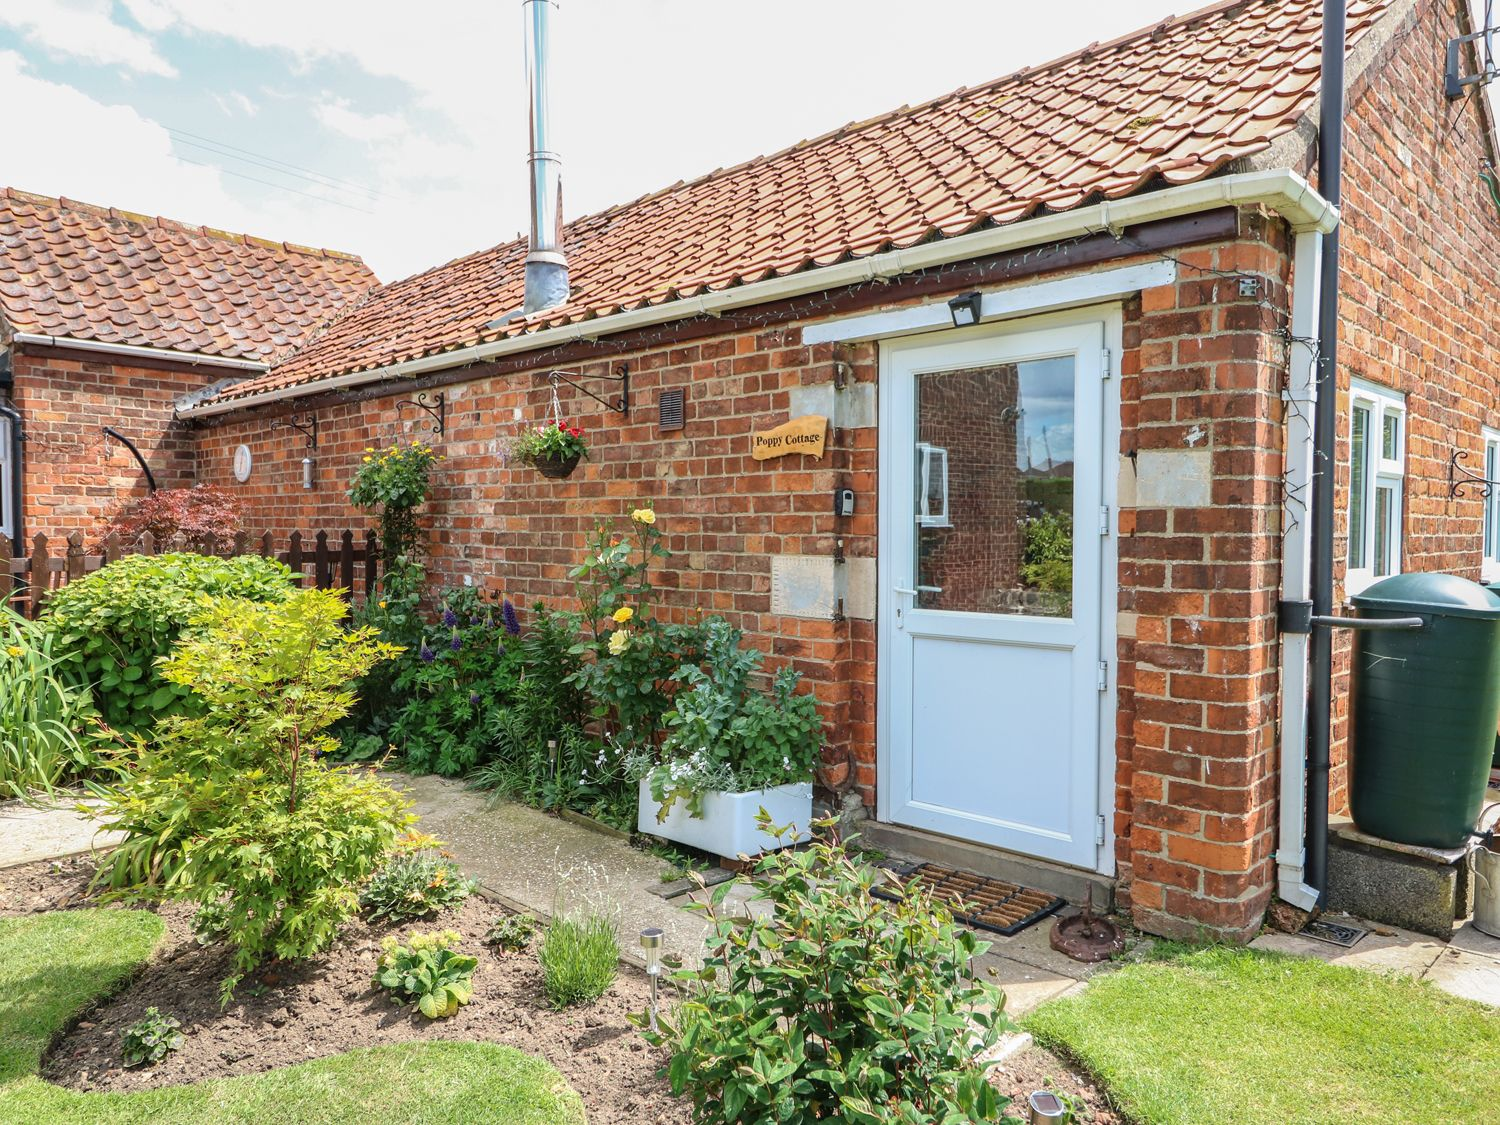 Poppy Cottage in Heckington - sleeps 4 people